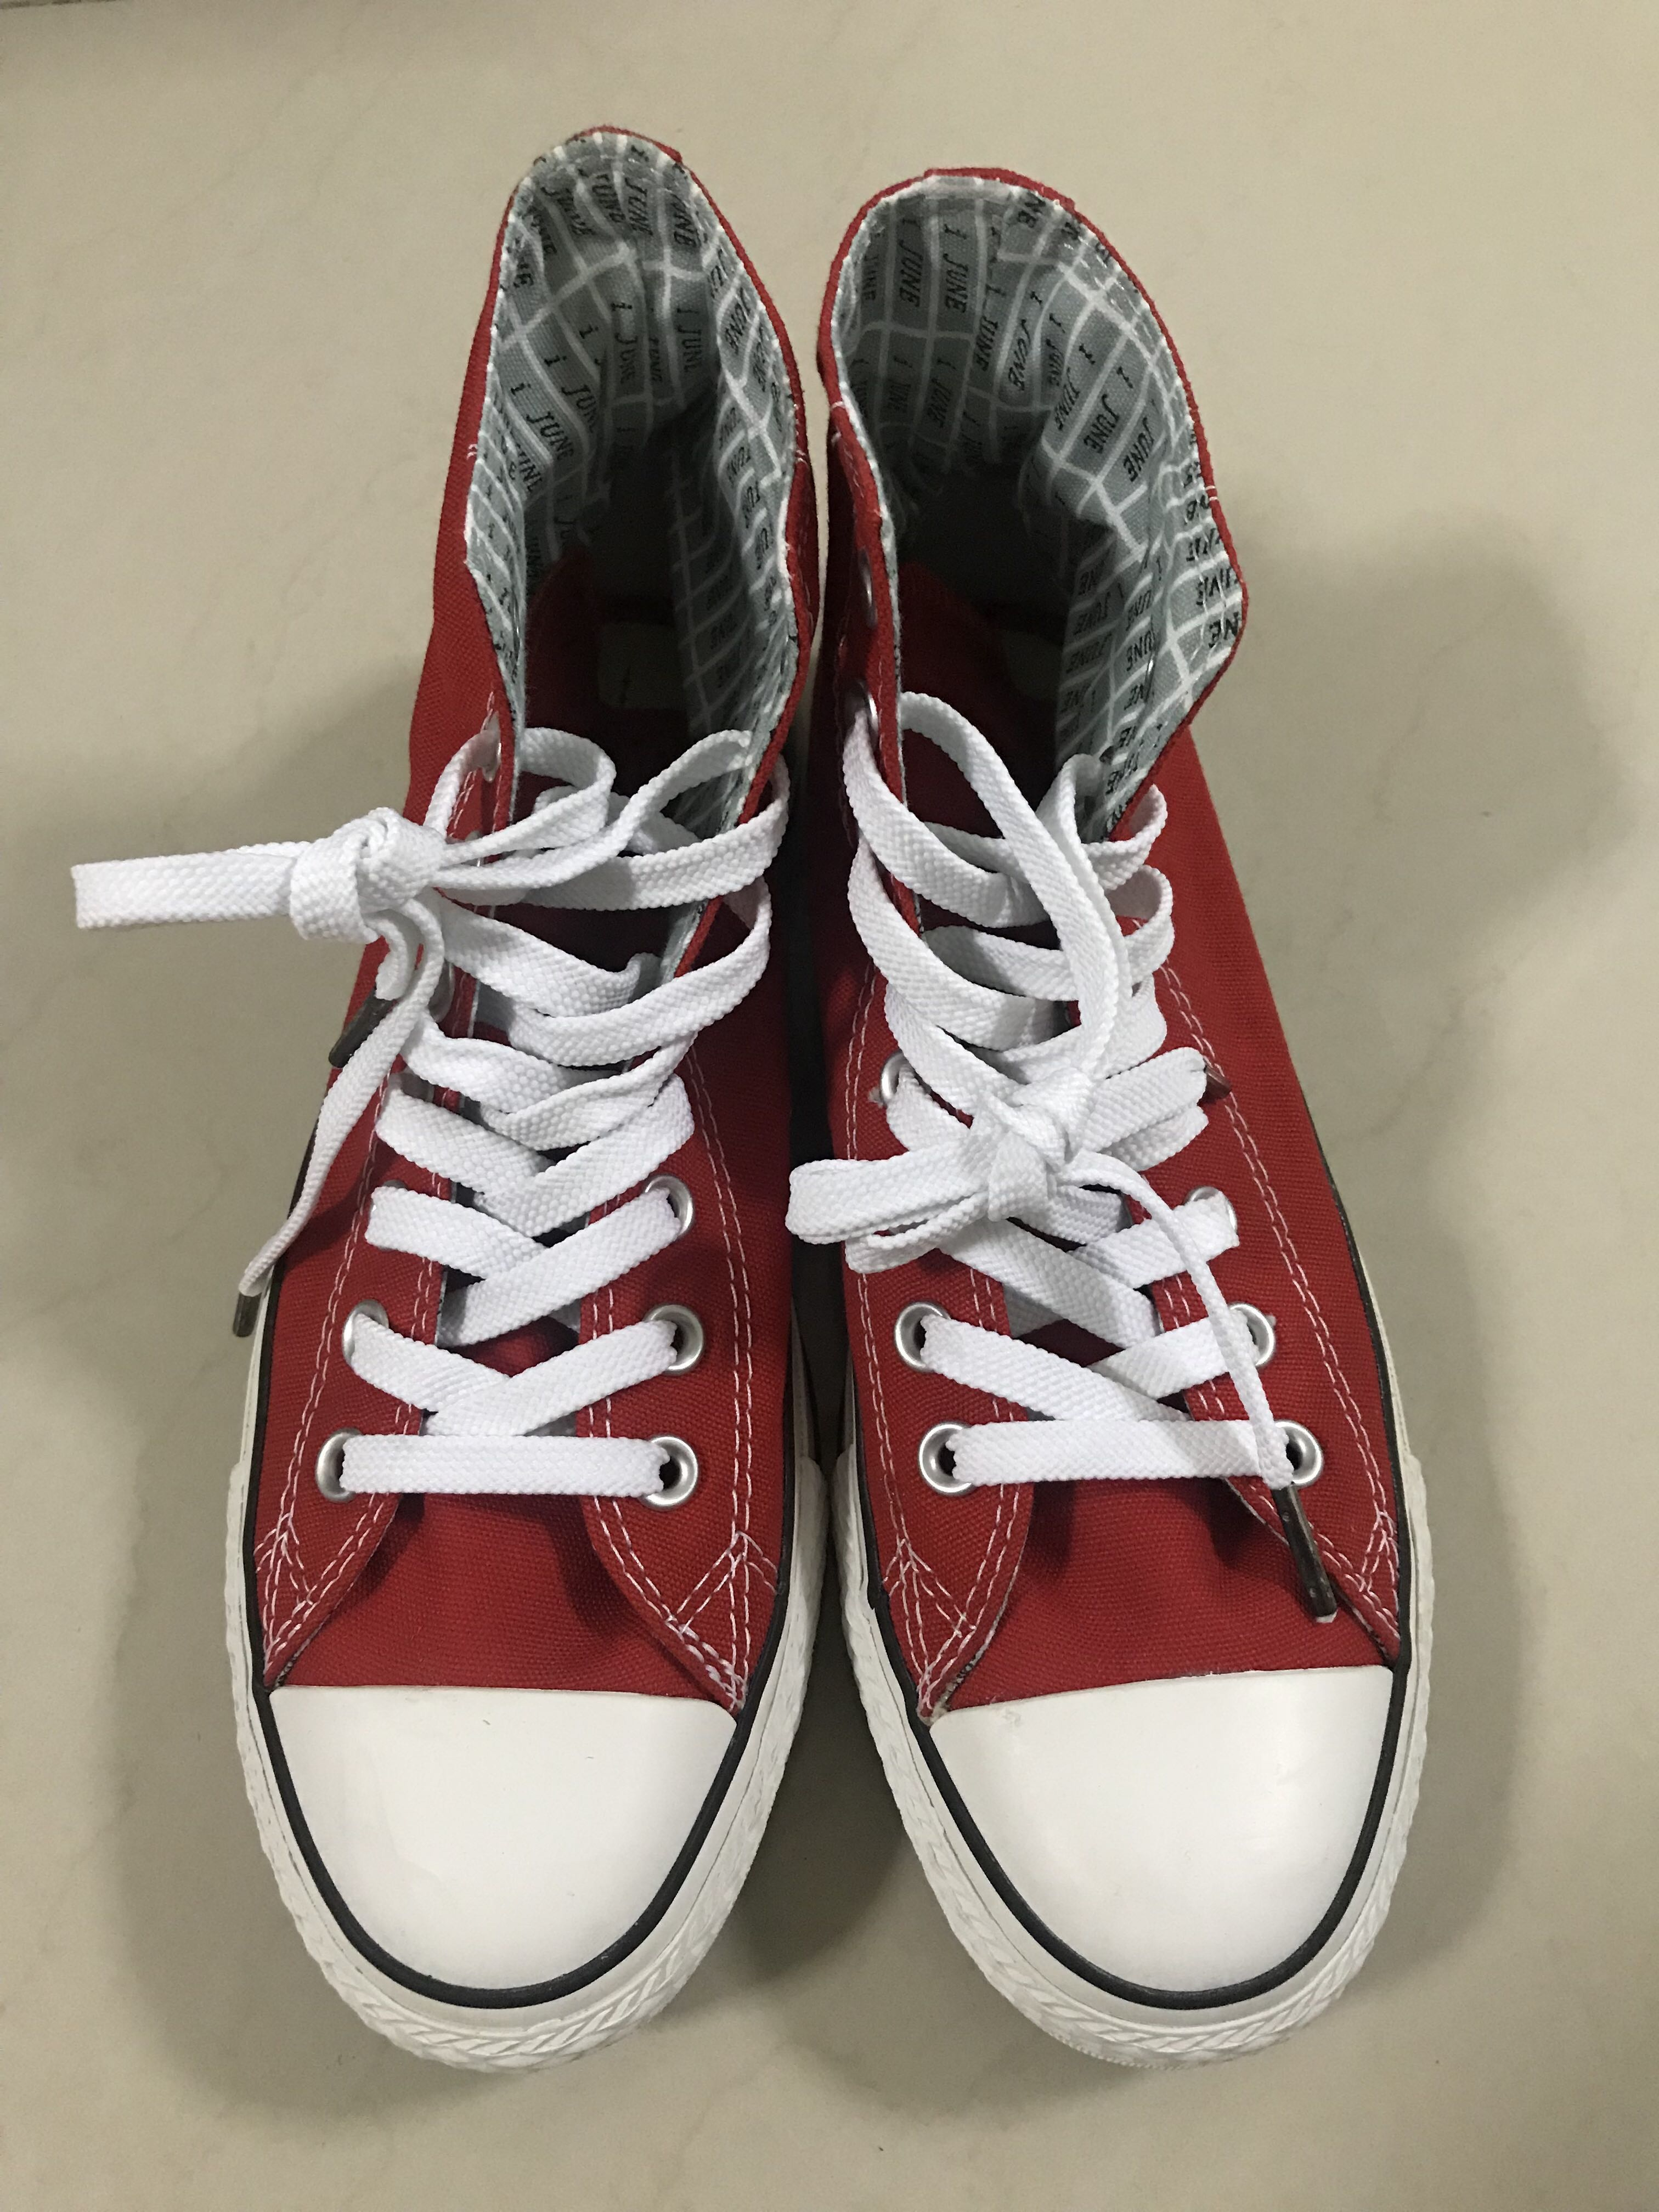 6c837d2d6a17 BNIB Unisex Canvas Shoes Sneakers Bright Red High Top Lace Up ...